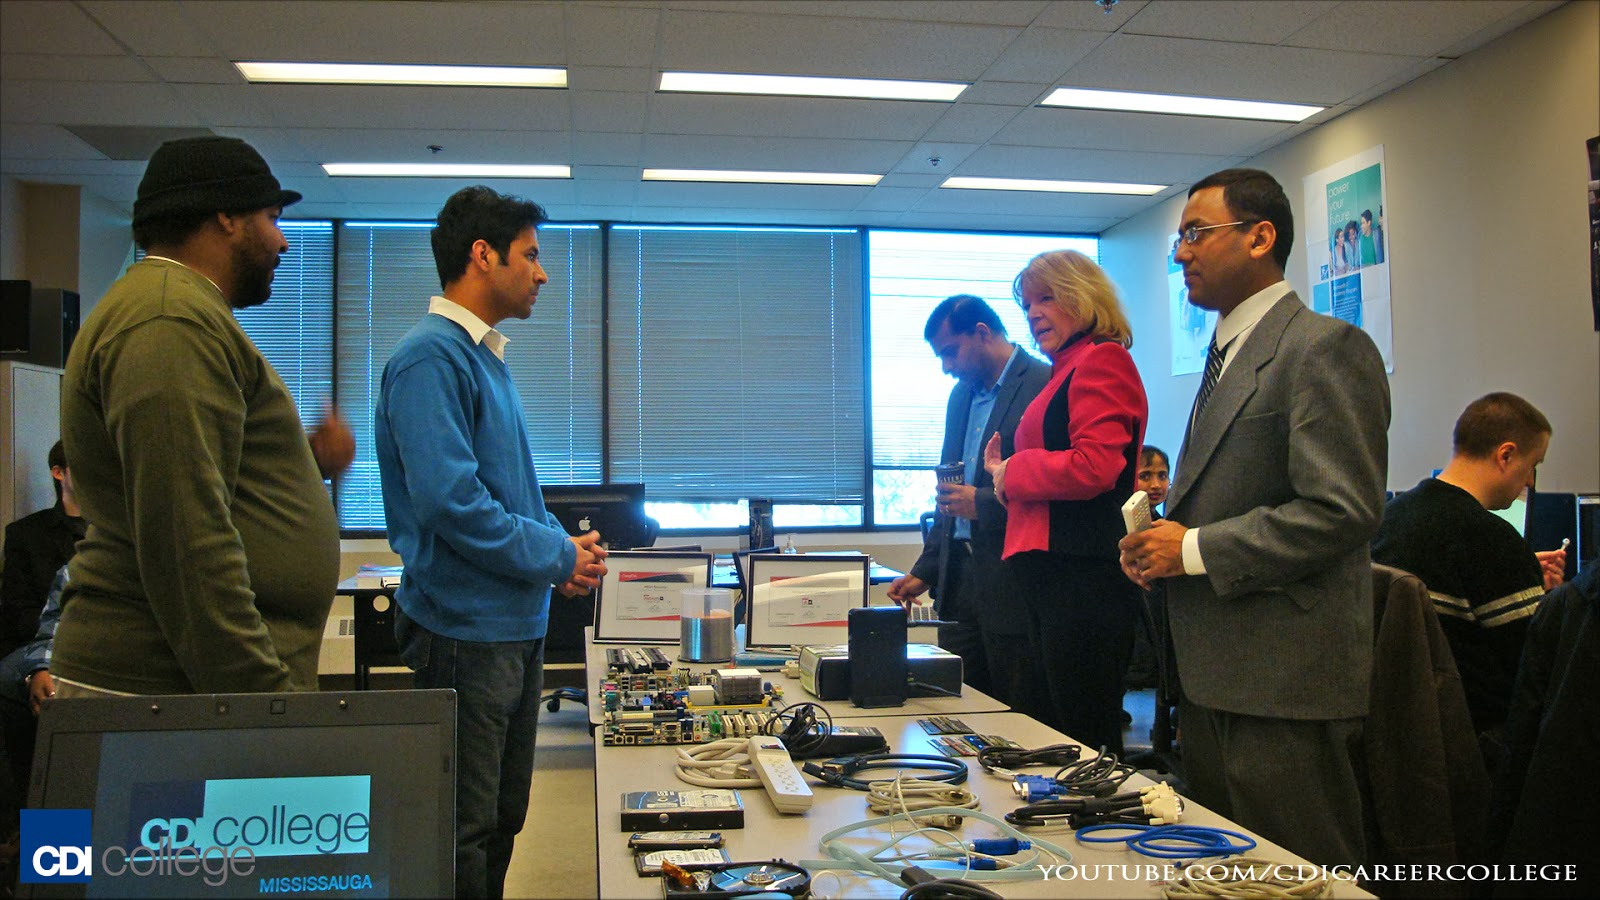 CompTIA-International-Director-Visits-CDI-College-Mississauga-Campus-Equipment-on-Display